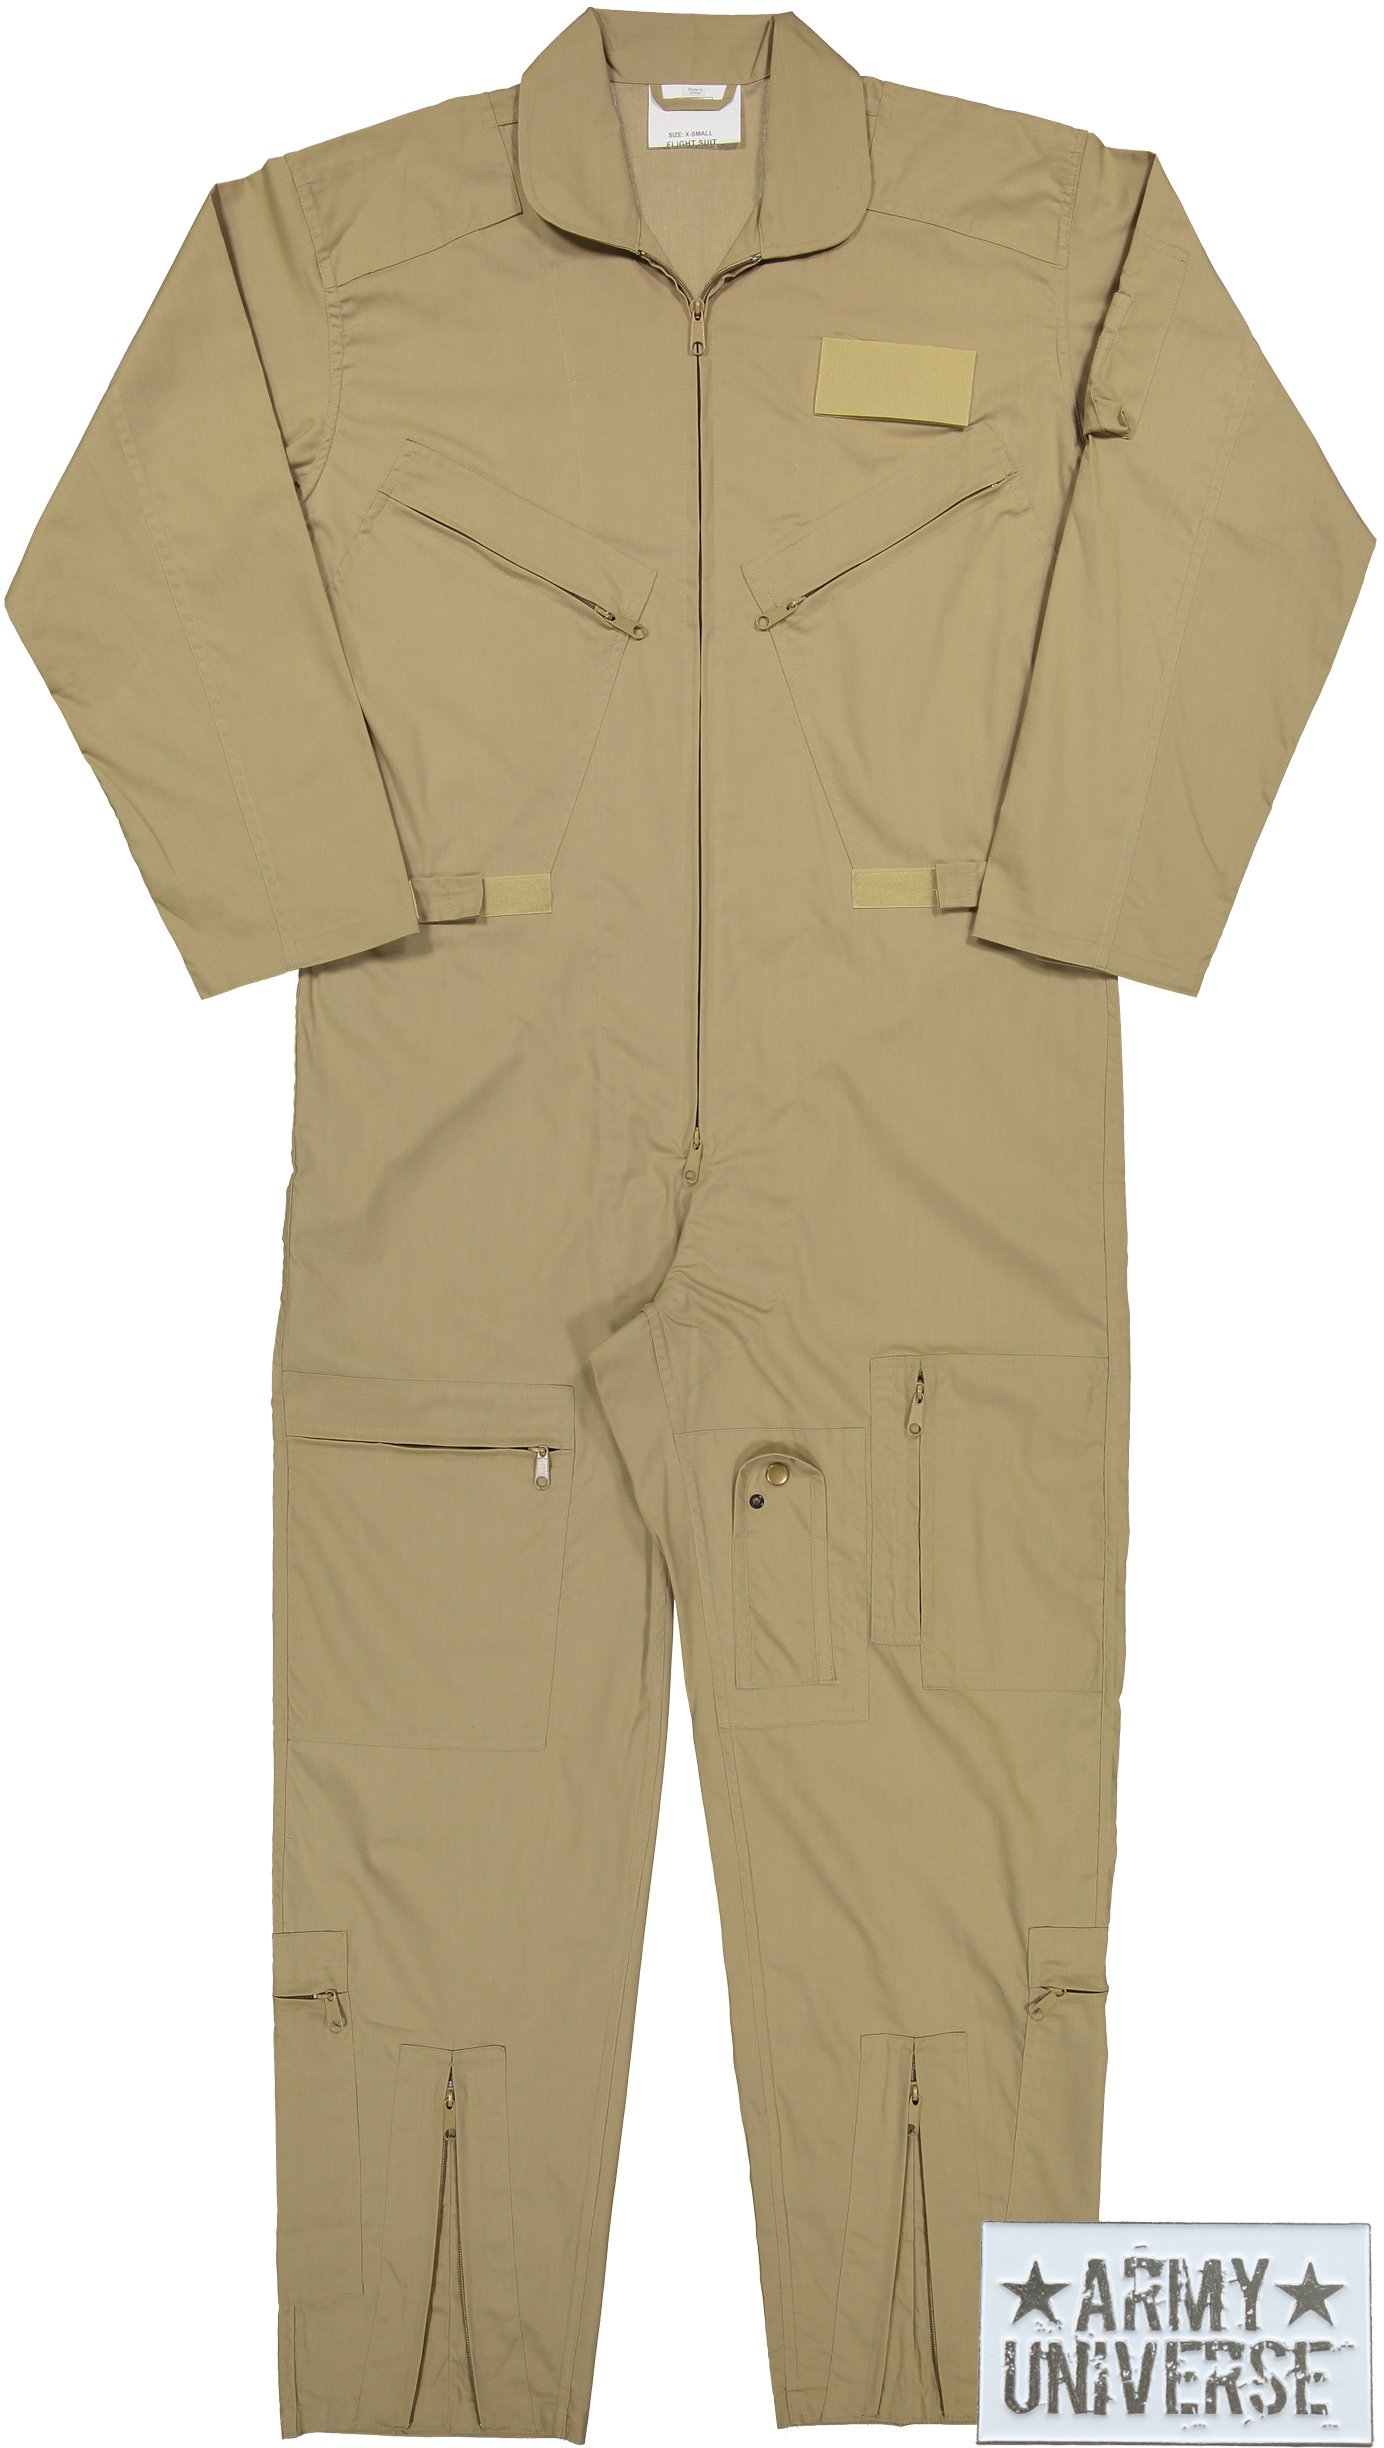 Army Universe Air Force Flight Suits, US Military Type Coveralls, Uniform Overalls/Jumpsuits with Pin (Khaki, Large)